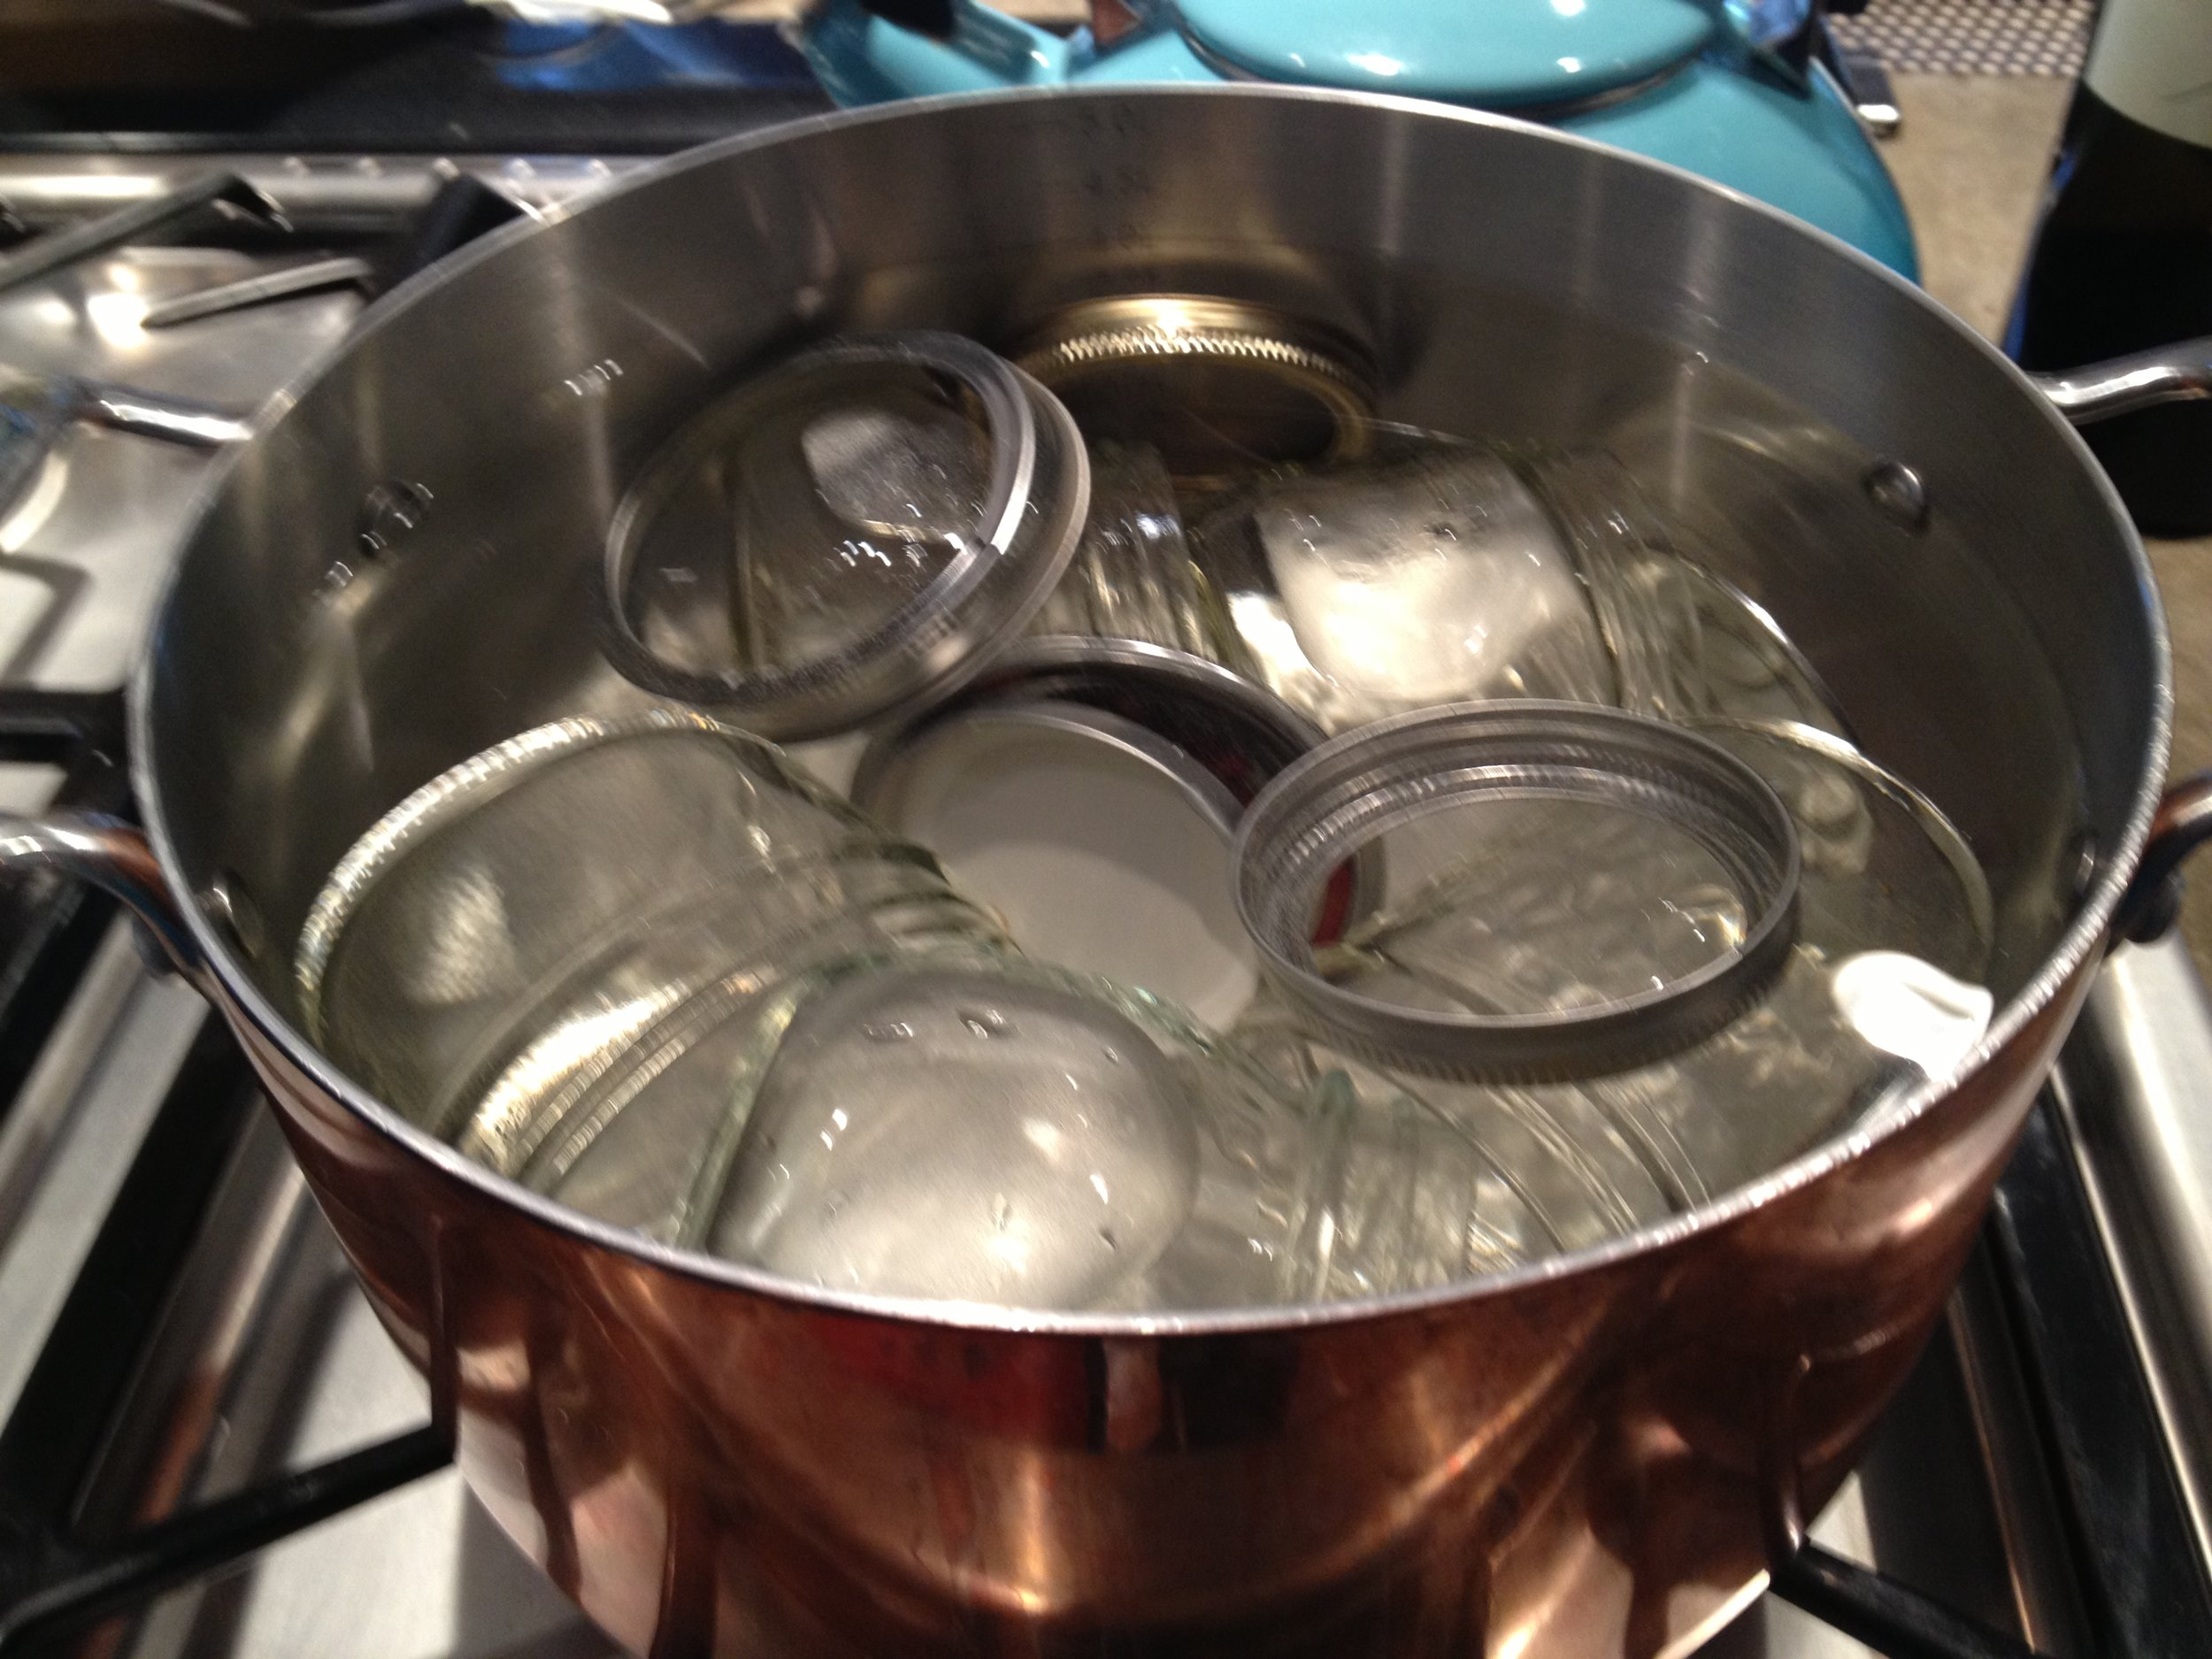 Sterilizing the jars in boiling water